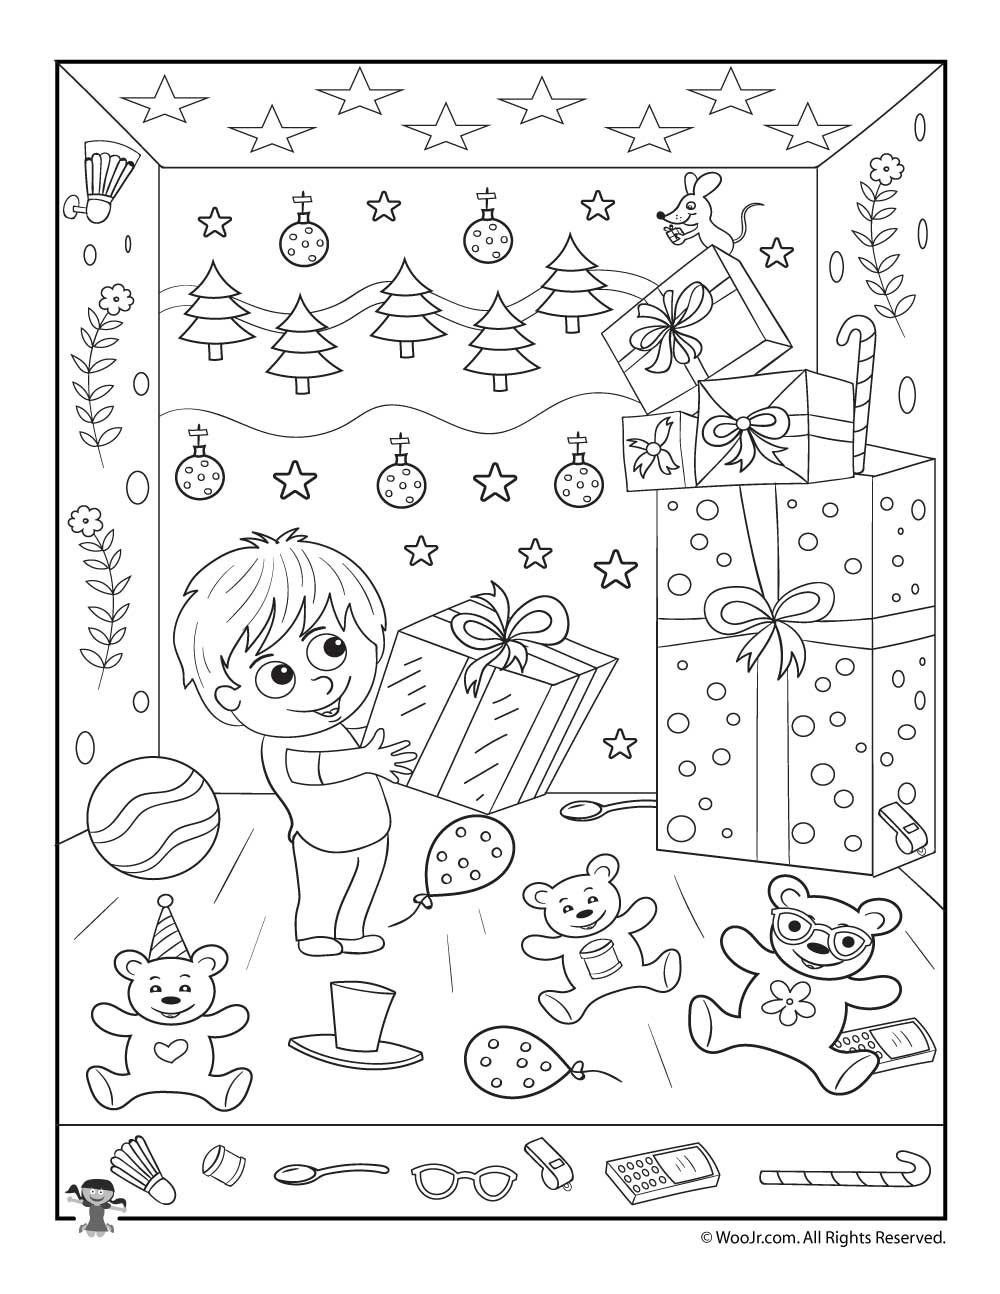 Christmas Gifts Hidden Picture Printable Activity | Merry Christmas - Free Printable Christmas Hidden Picture Games